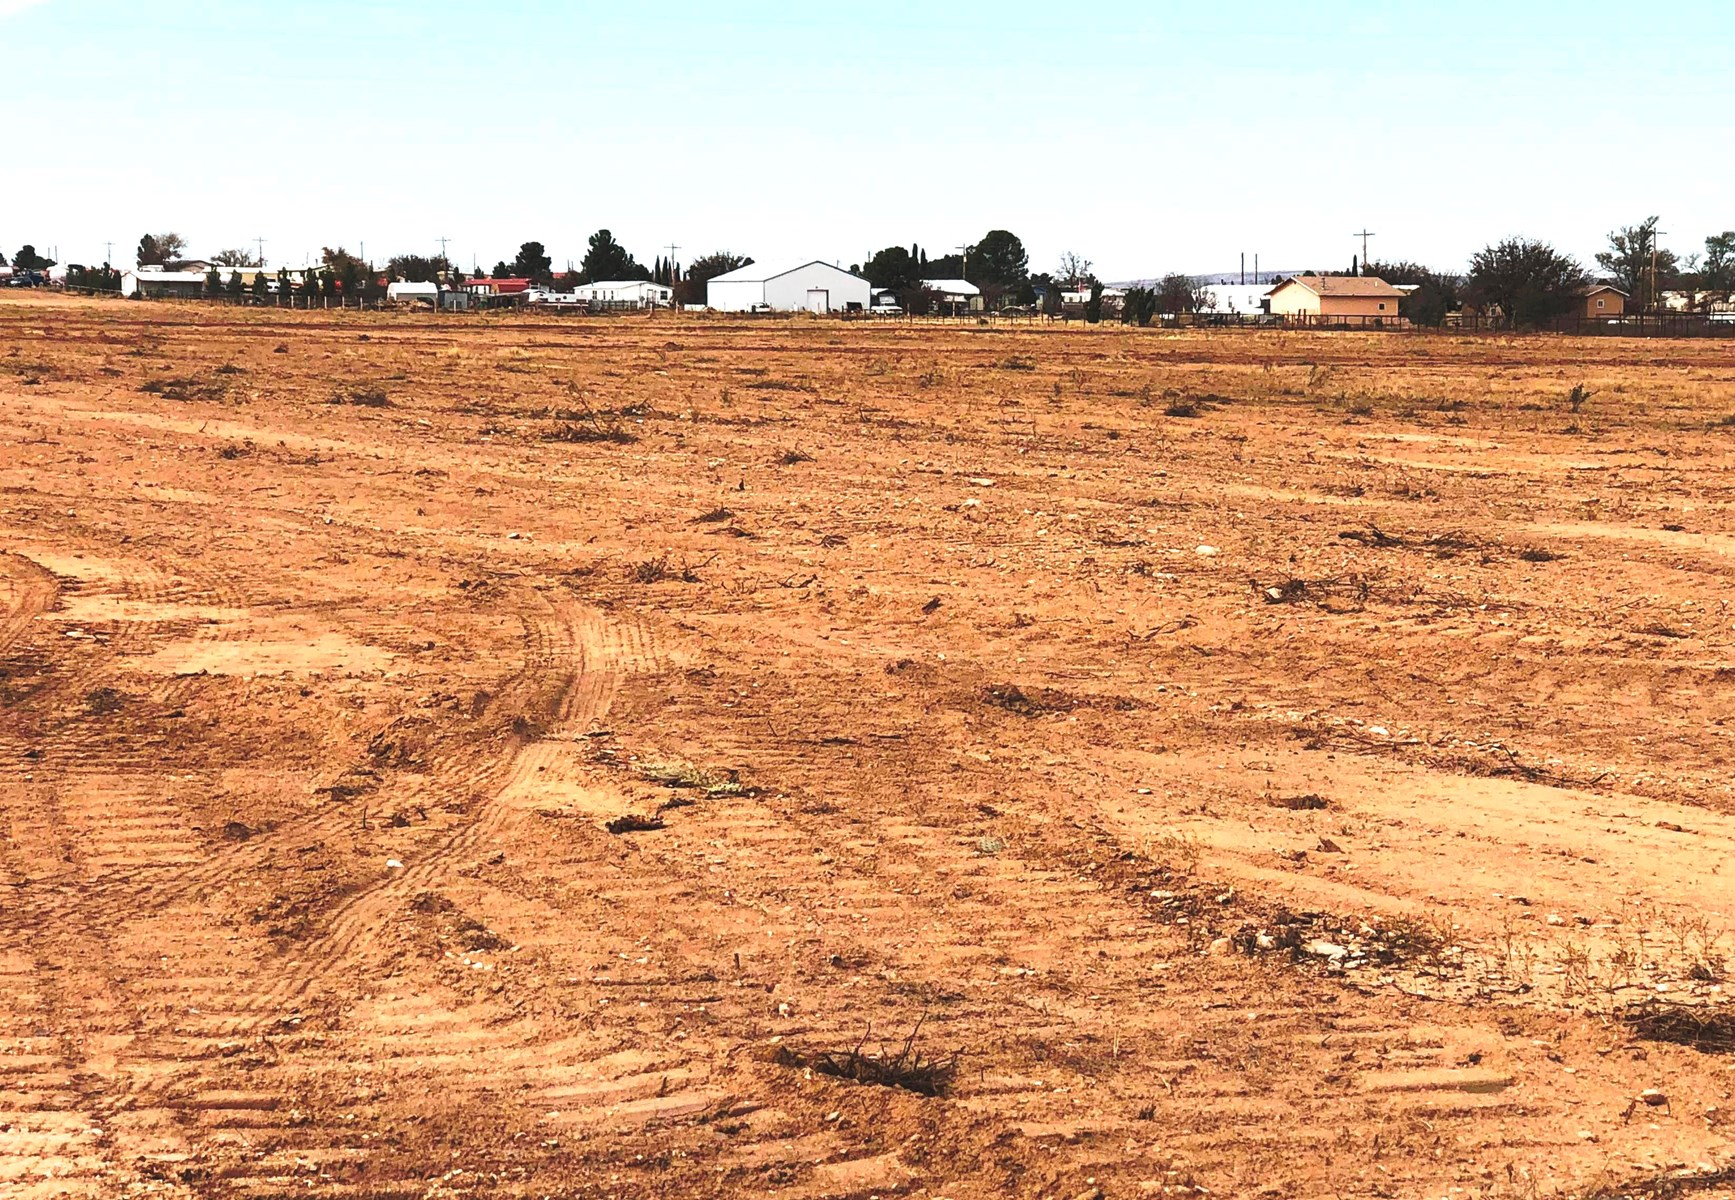 Land For Sale in Carlsbad New Mexico, Eddy County, Acreage